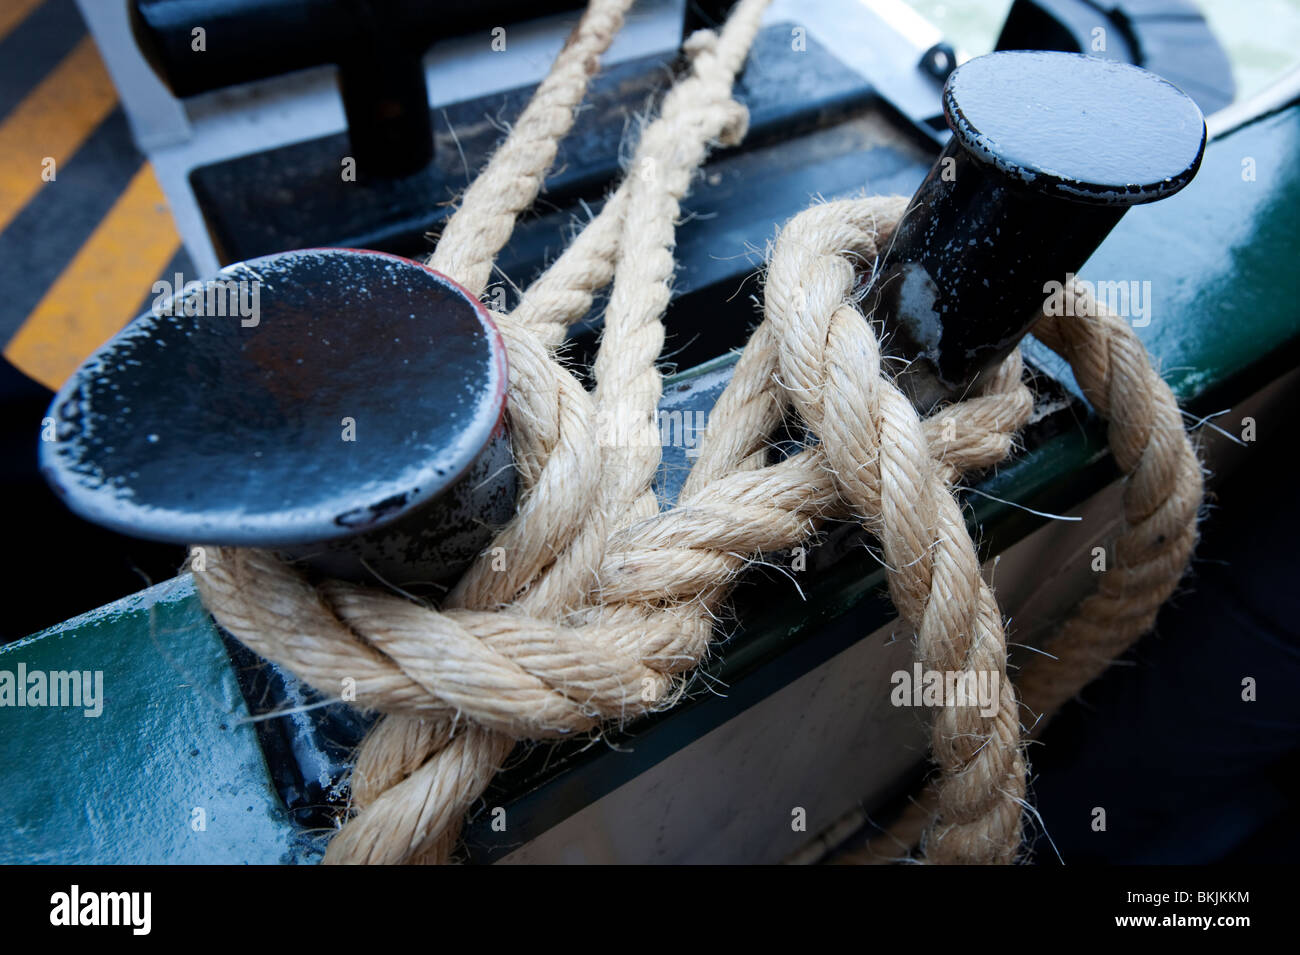 Detail of rope mooring on Vaporetto waterbus on the Grand Canal in Venice Italy - Stock Image